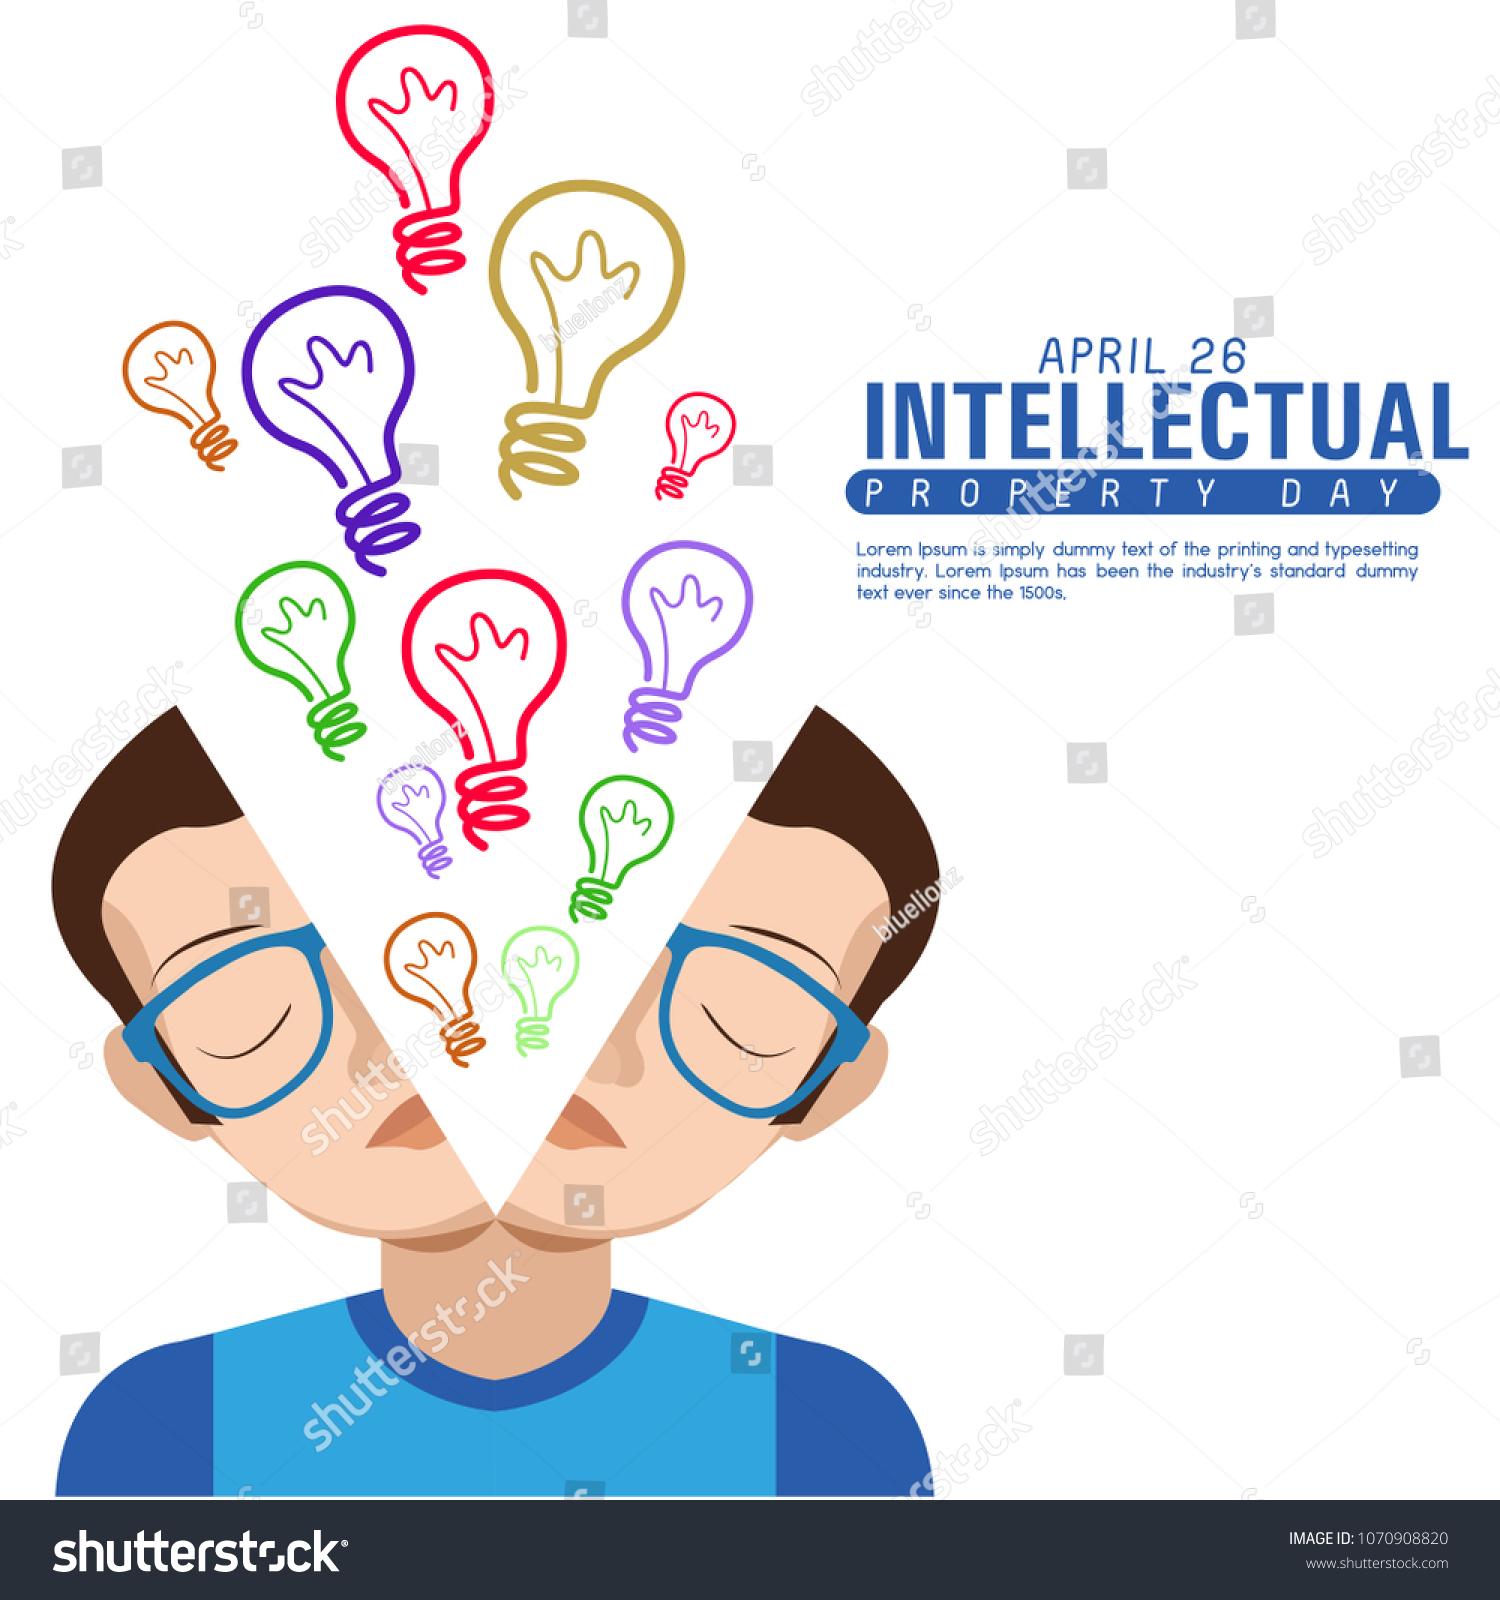 World Intellectual Property Day Vector Illustration Stock Vector